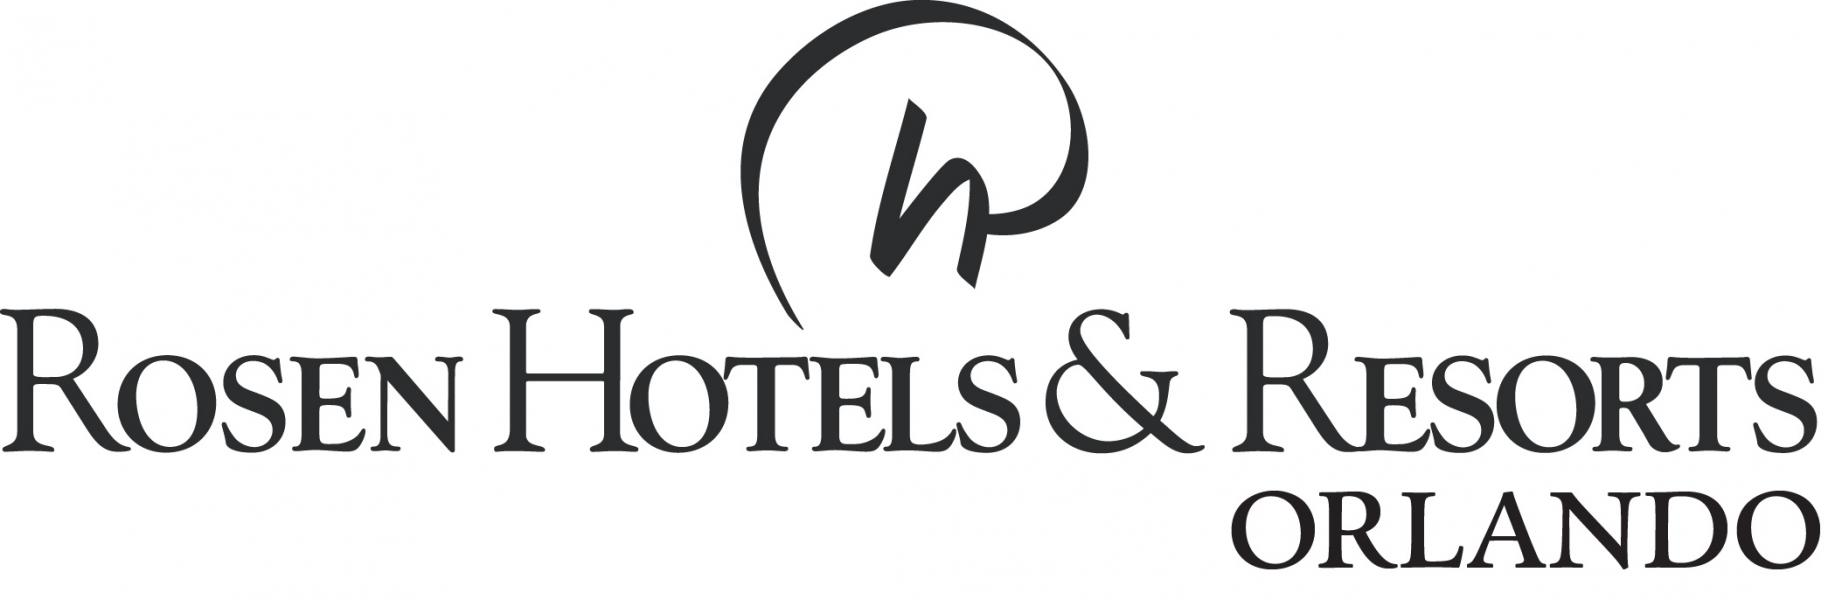 Rosen Hotels & Resorts Orlando logo (Black)